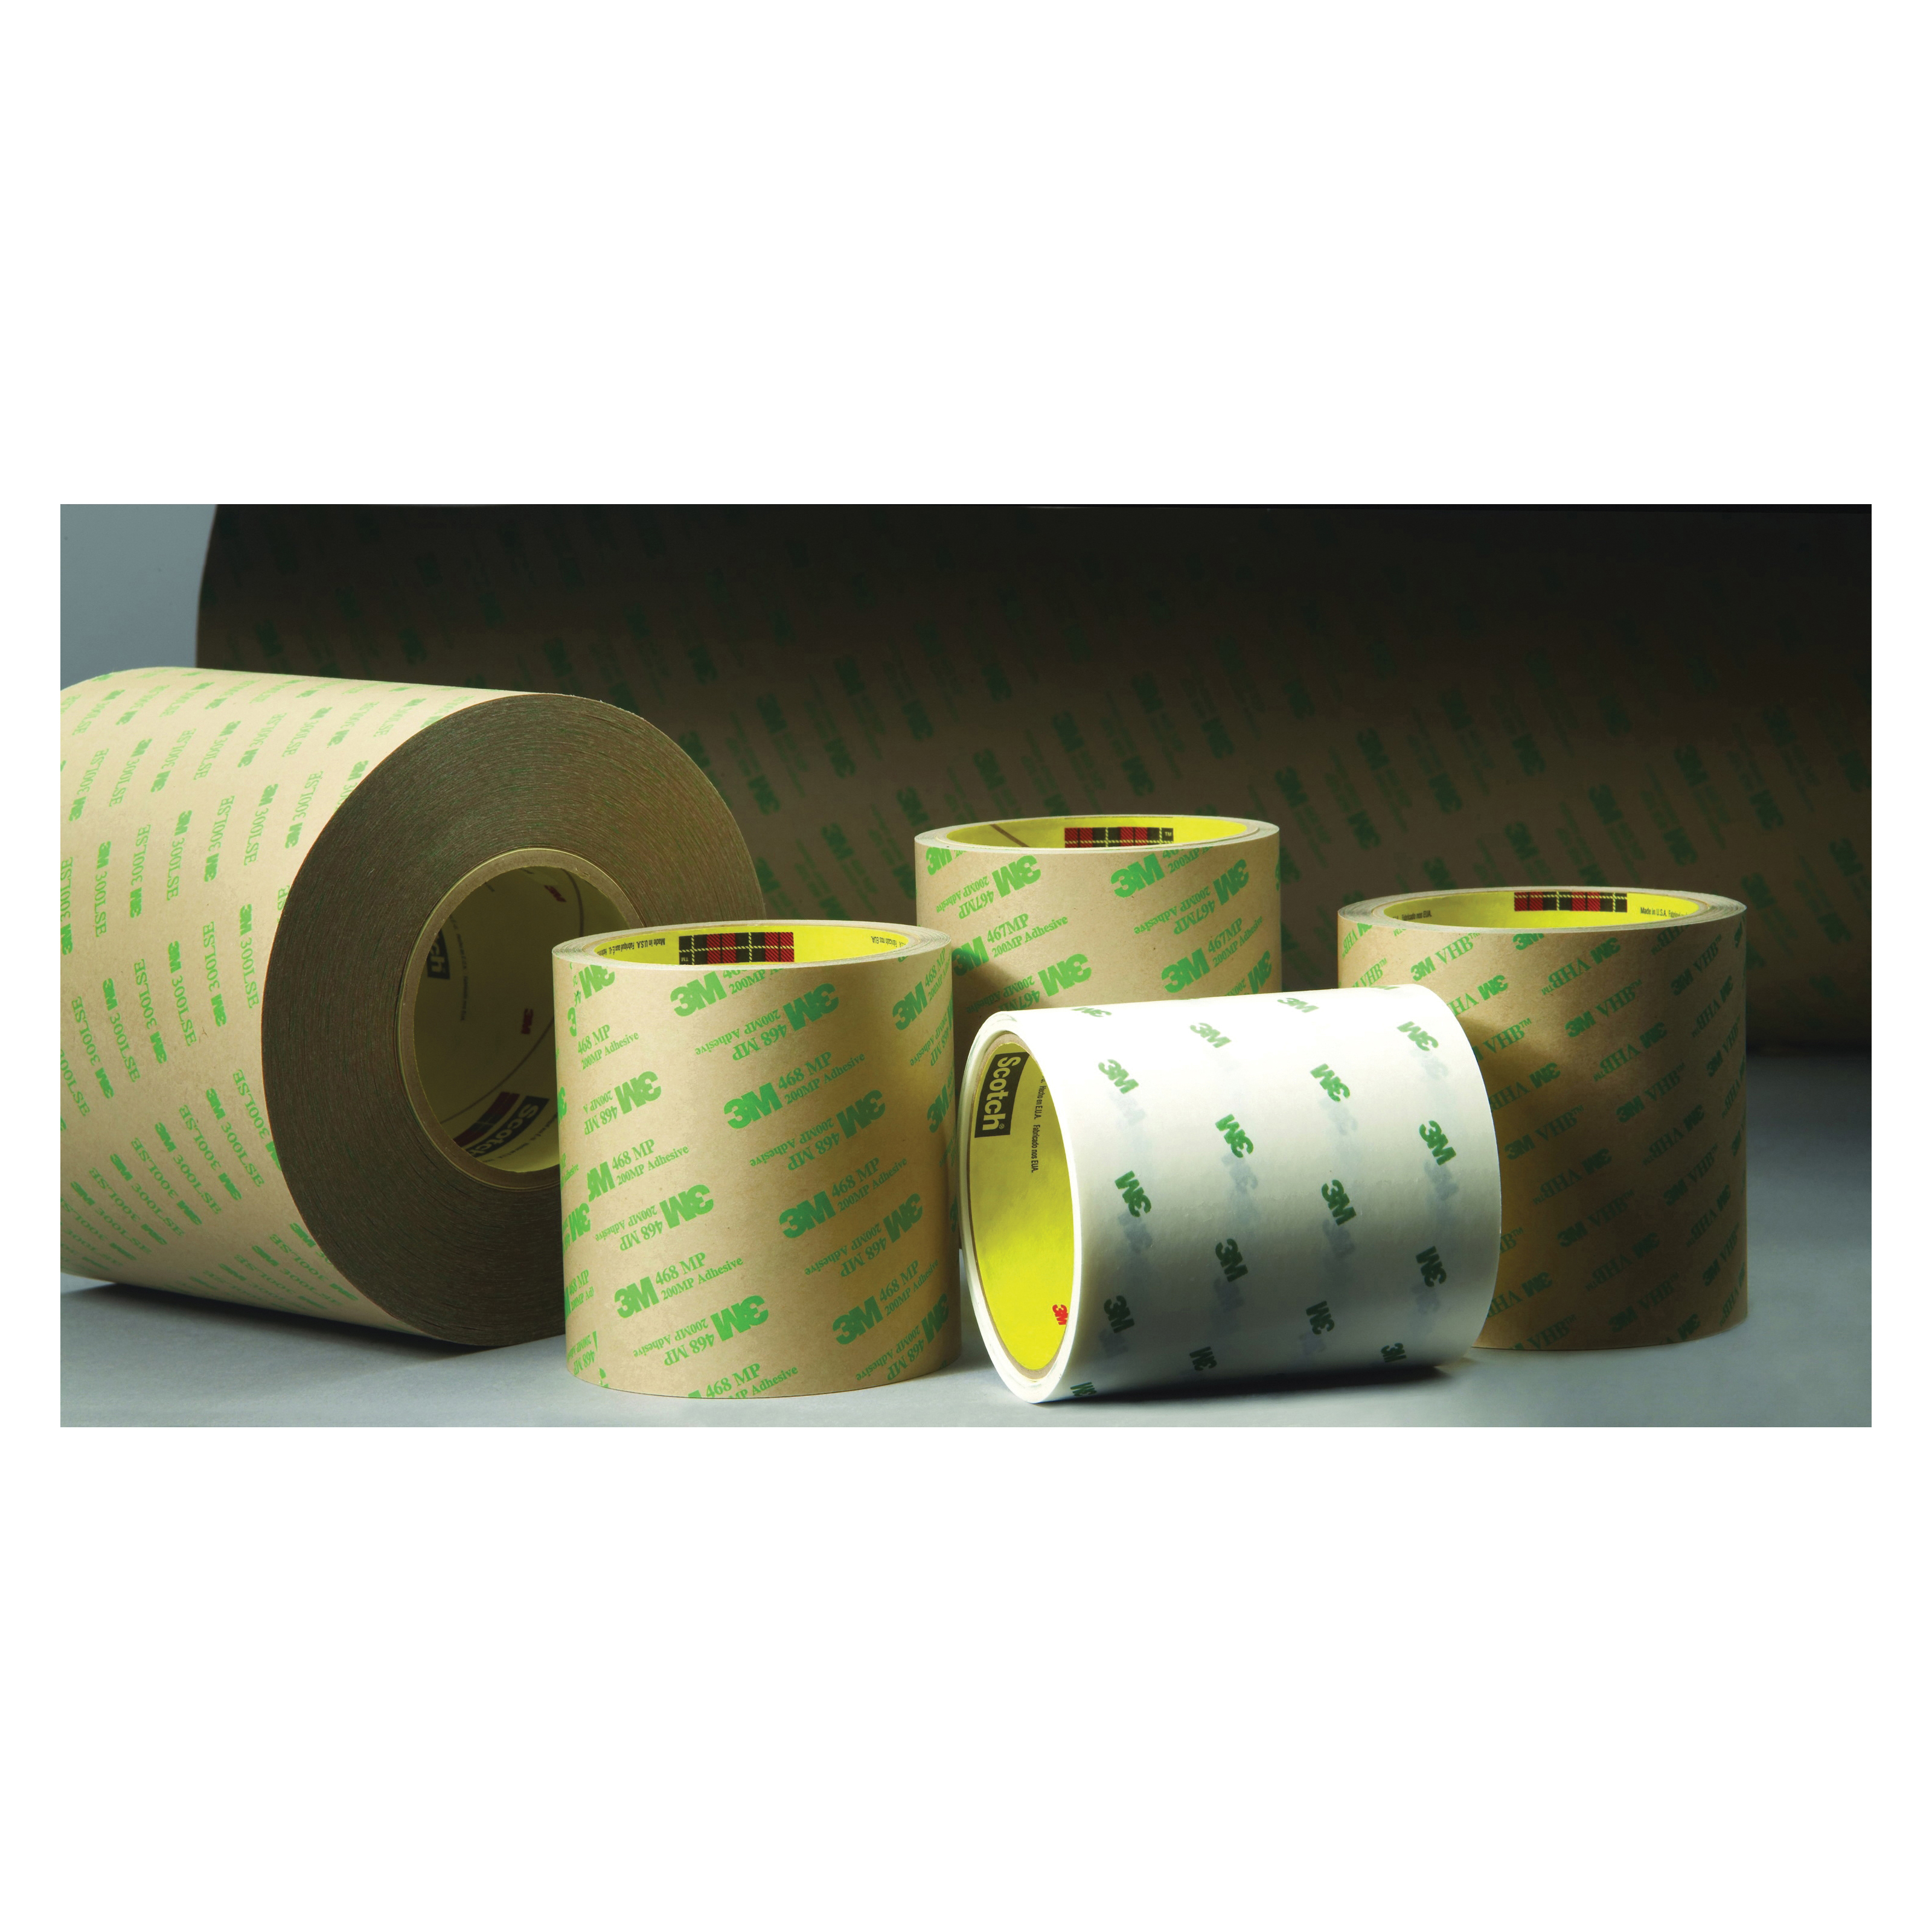 3M™ 021200-11709 966 Low Tack Adhesive Transfer Tape, 60 yd L x 1 in W, 6.1 mil THK, 2.3 mil 100 Acrylic Adhesive, Clear